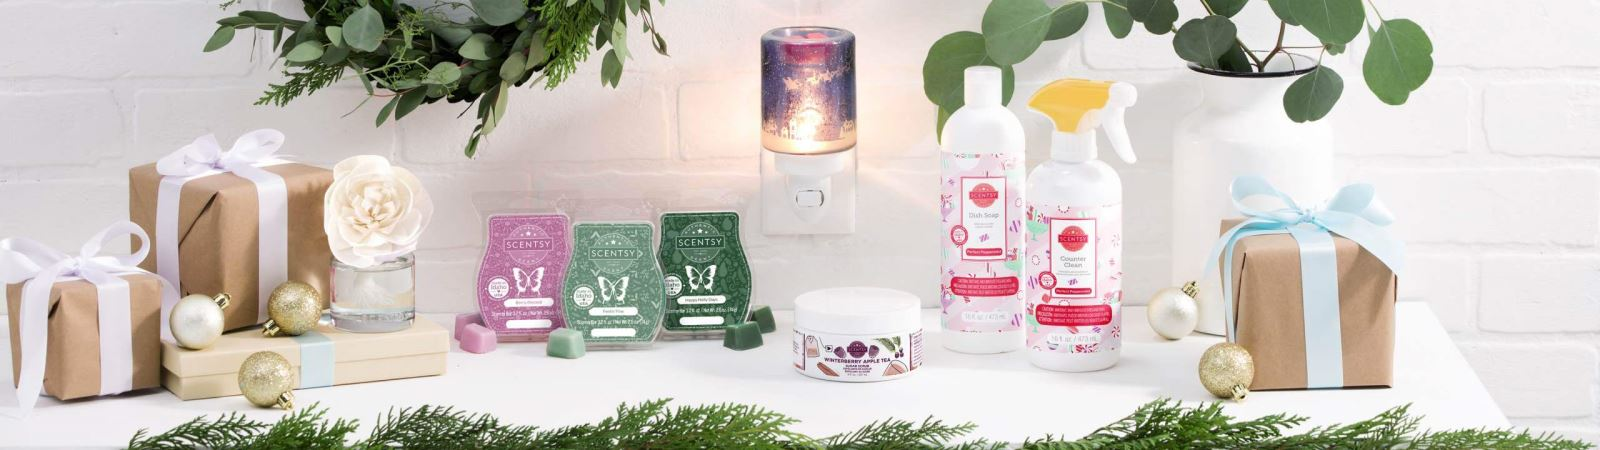 SCENTSY HOLIDAY COLLECTION 2020